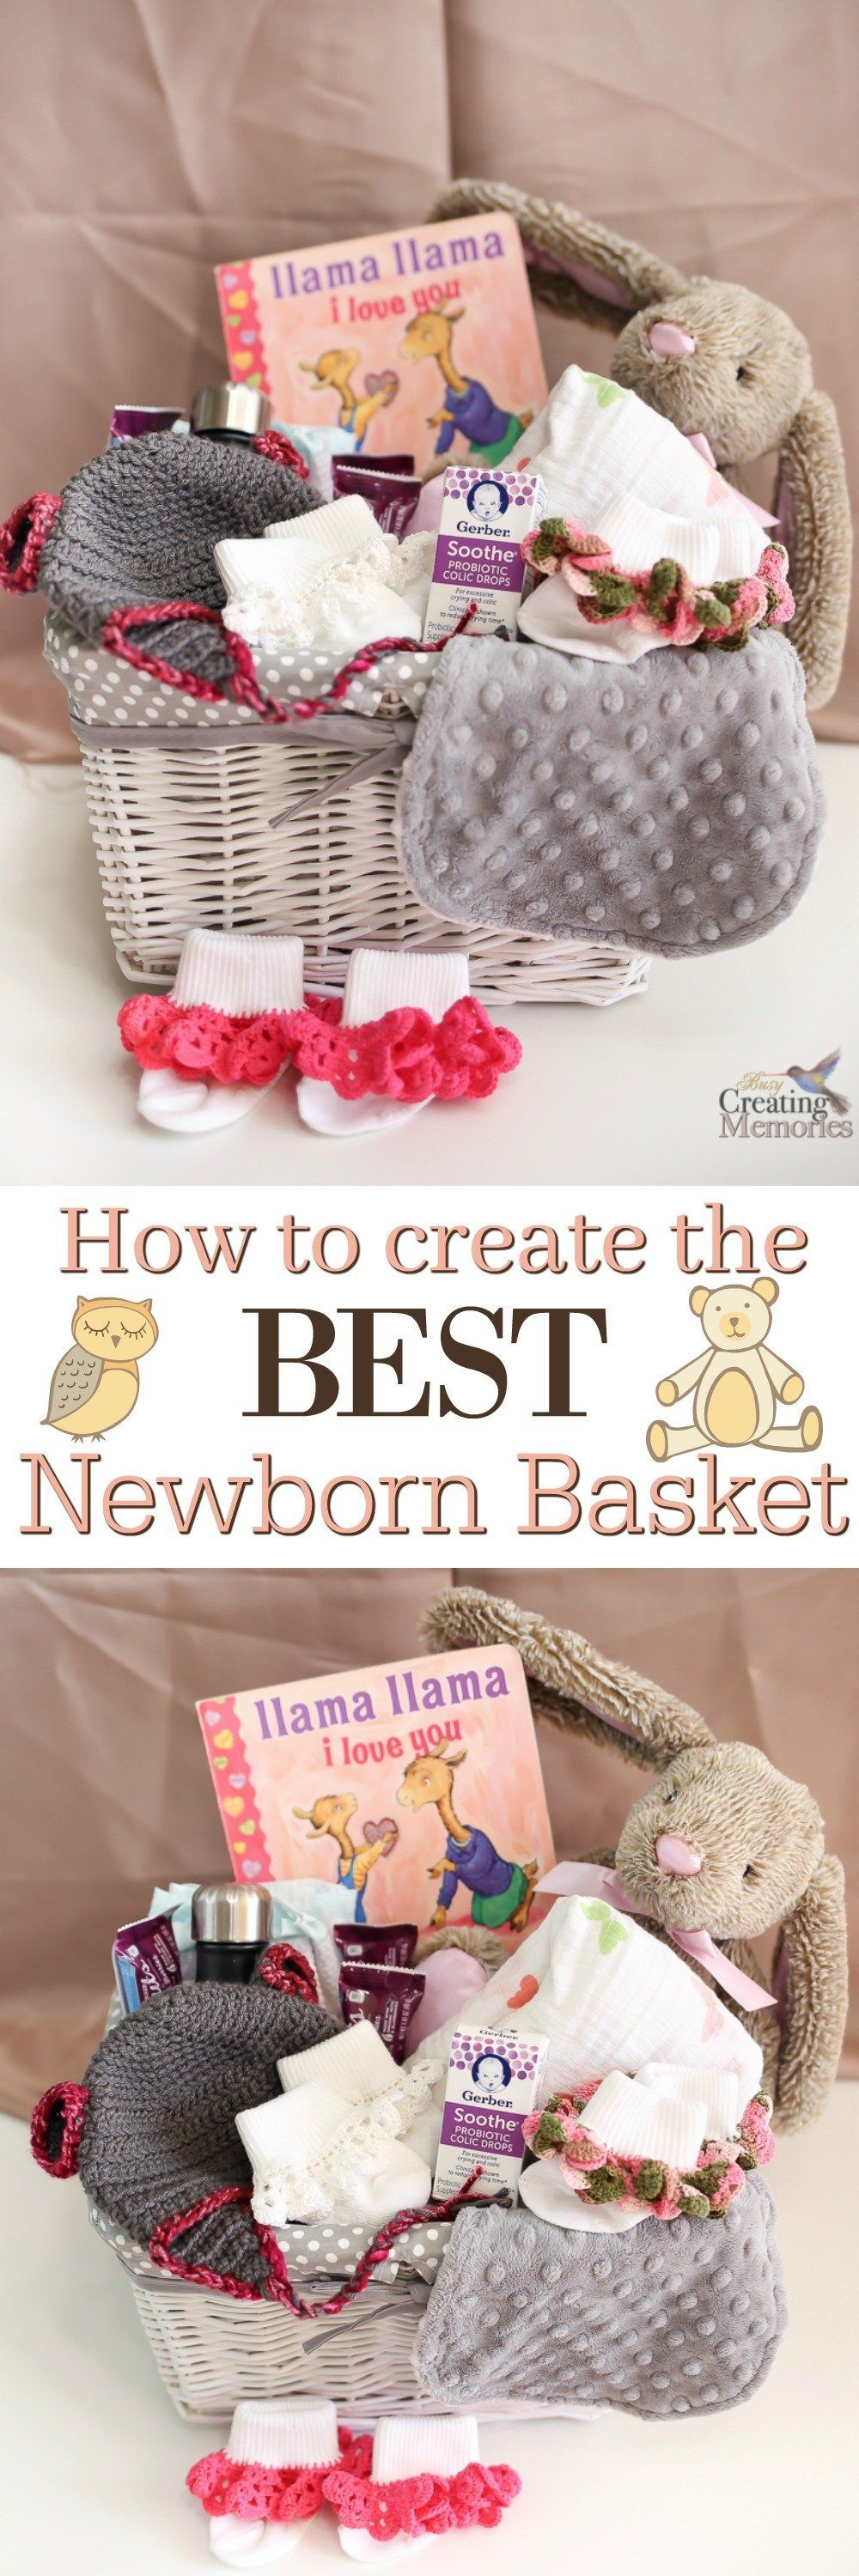 97c84a7c635c Don t give the same old boring gifts after a new baby arrives! Learn how to  make the best newborn gift basket and the best items that stand out and  help the ...